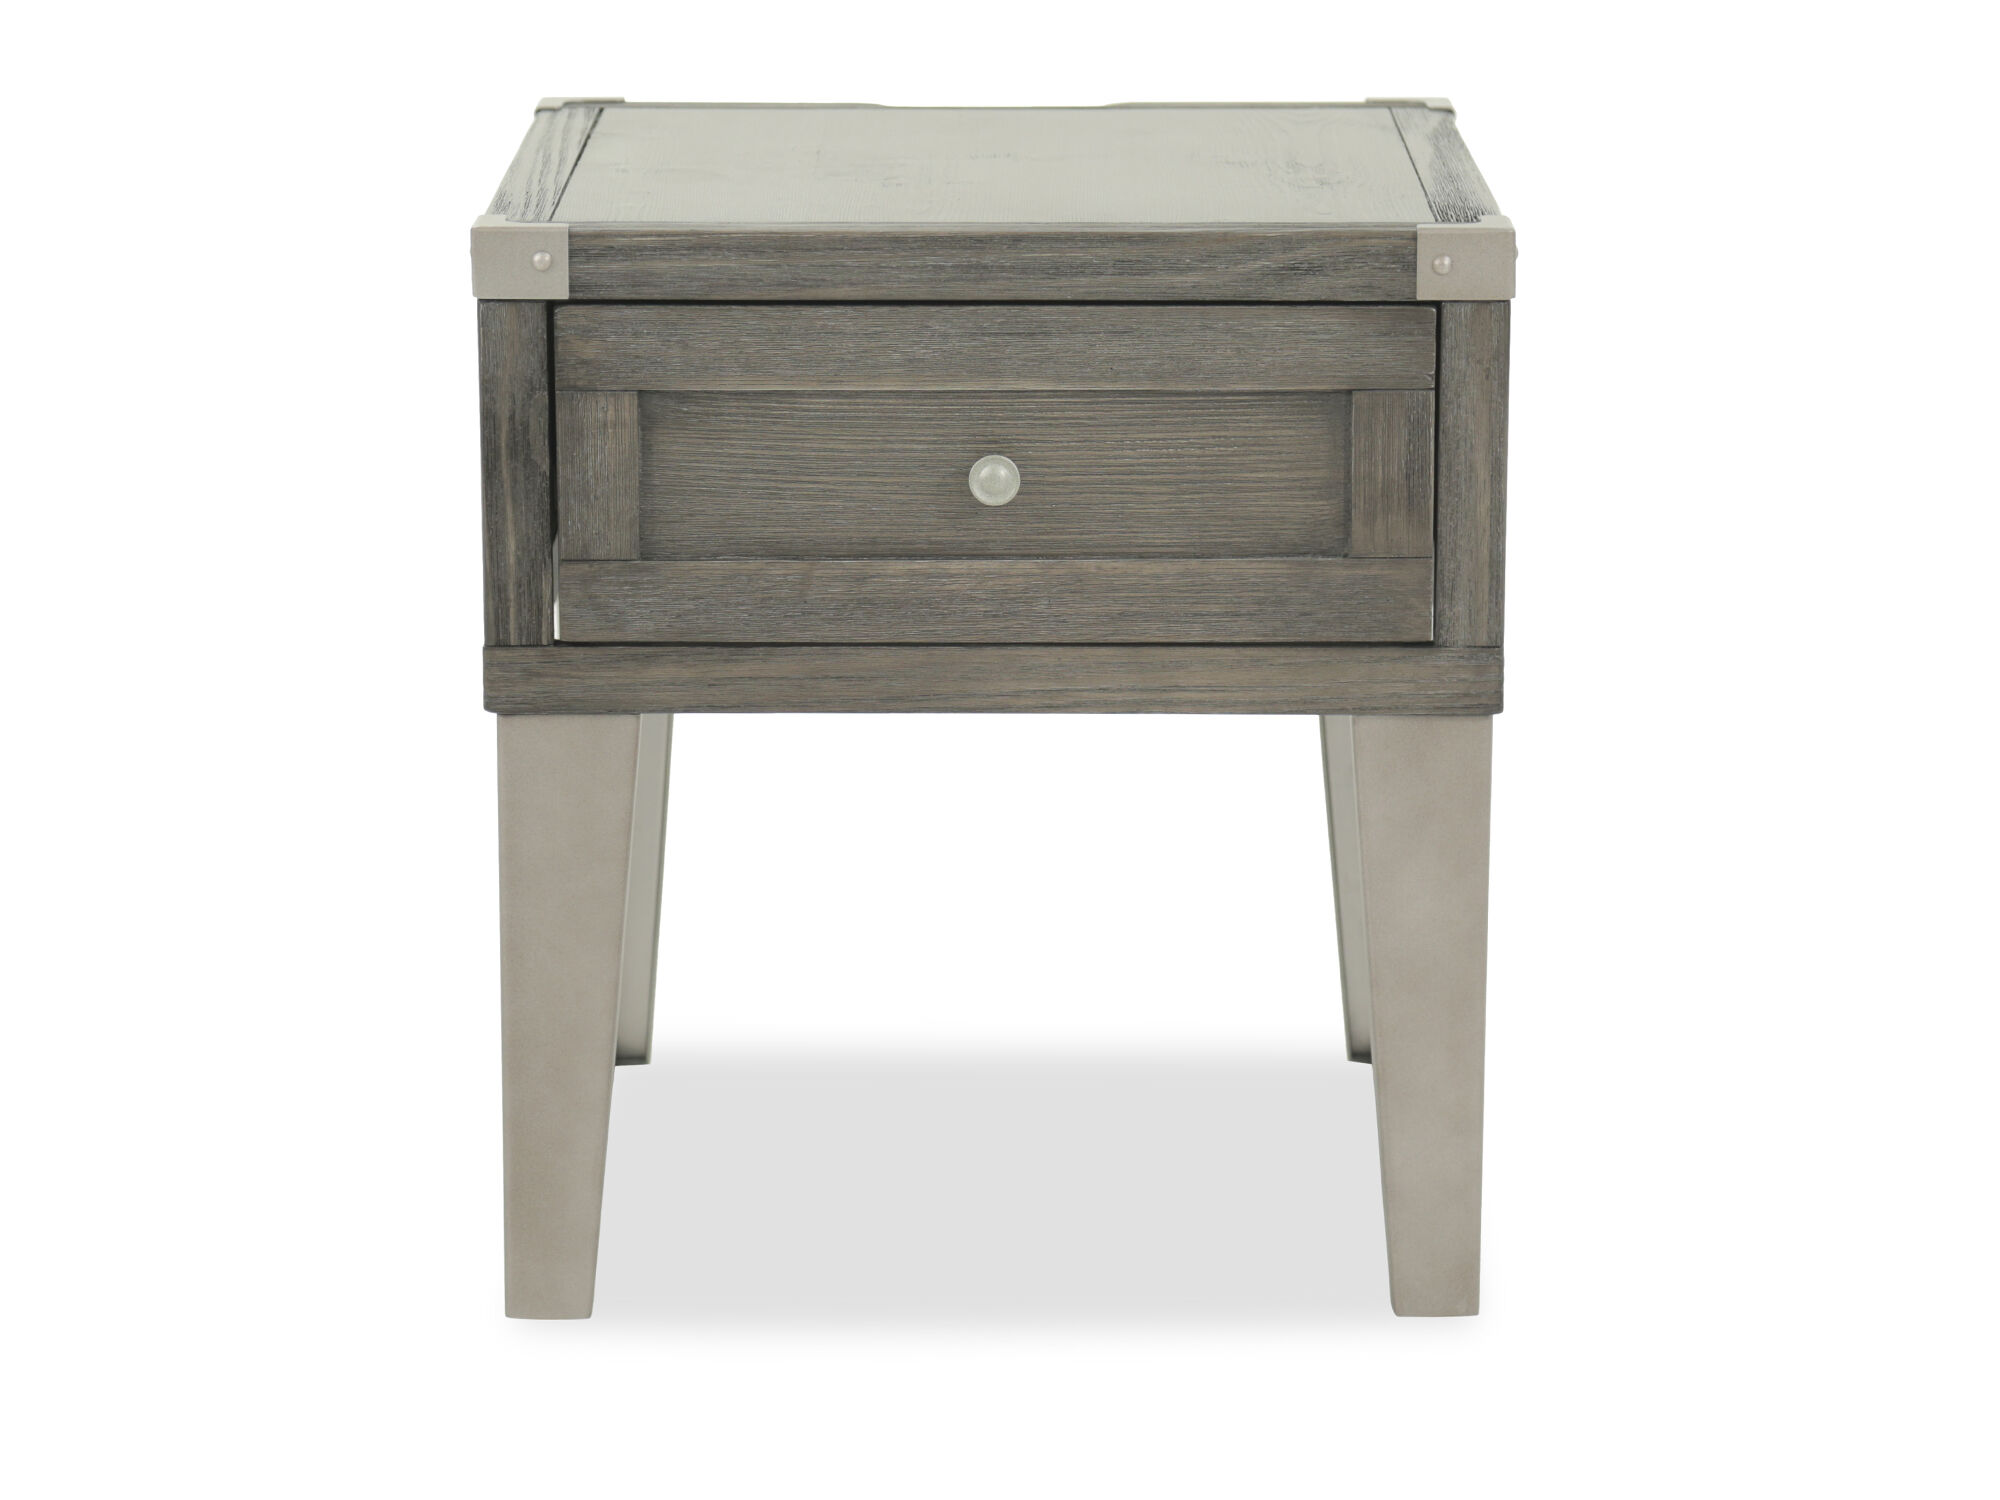 Contemporary Weathered End Table With USB Port In Dark